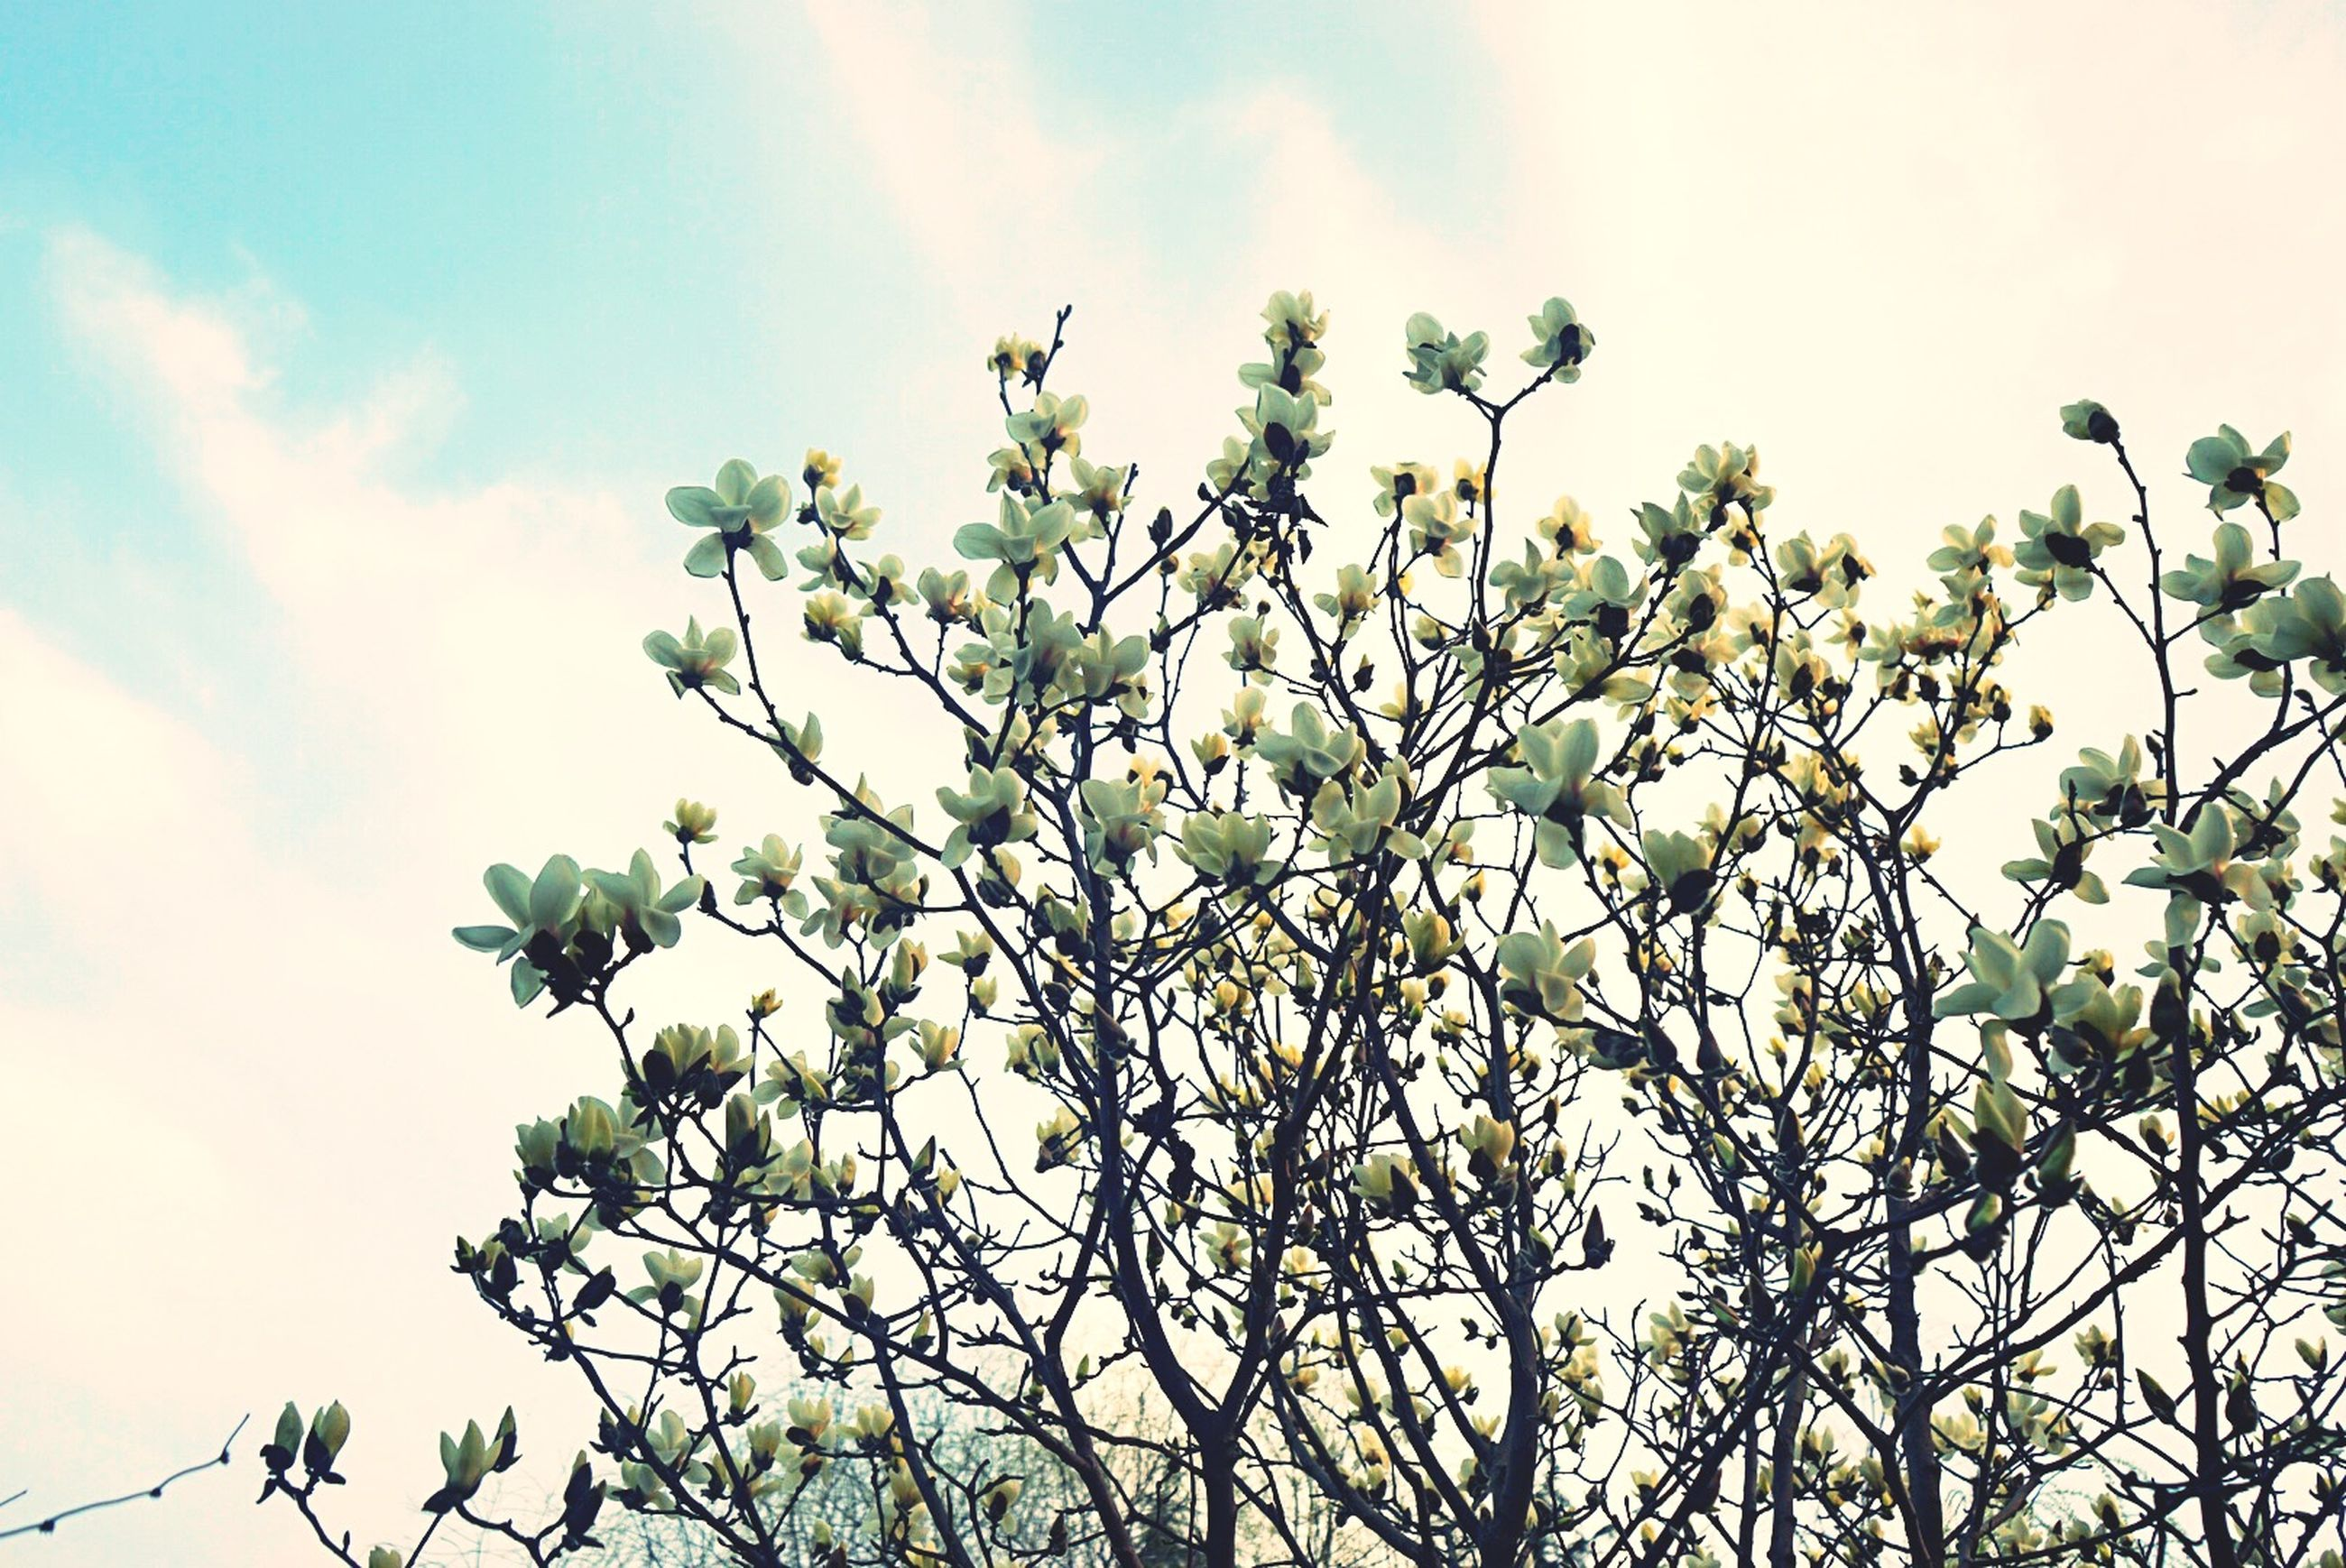 low angle view, growth, sky, flower, nature, freshness, beauty in nature, branch, leaf, tree, plant, fragility, cloud - sky, cloud, day, outdoors, blossom, no people, stem, blooming